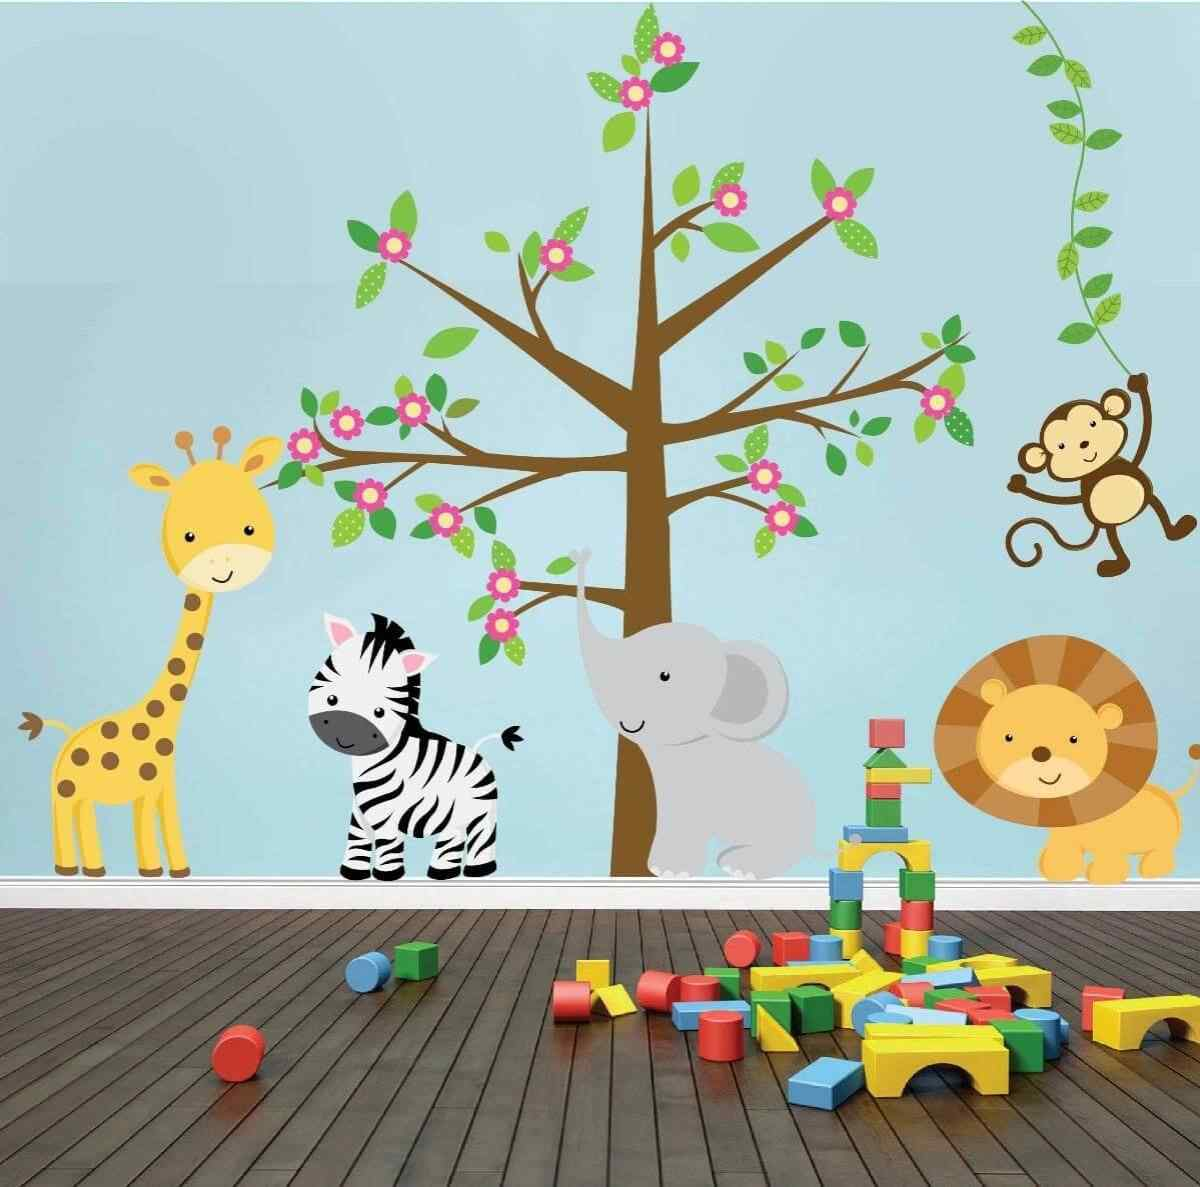 Consejos e ideas divertidas para decorar la habitaci n de - Ideas decorar habitacion infantil ...